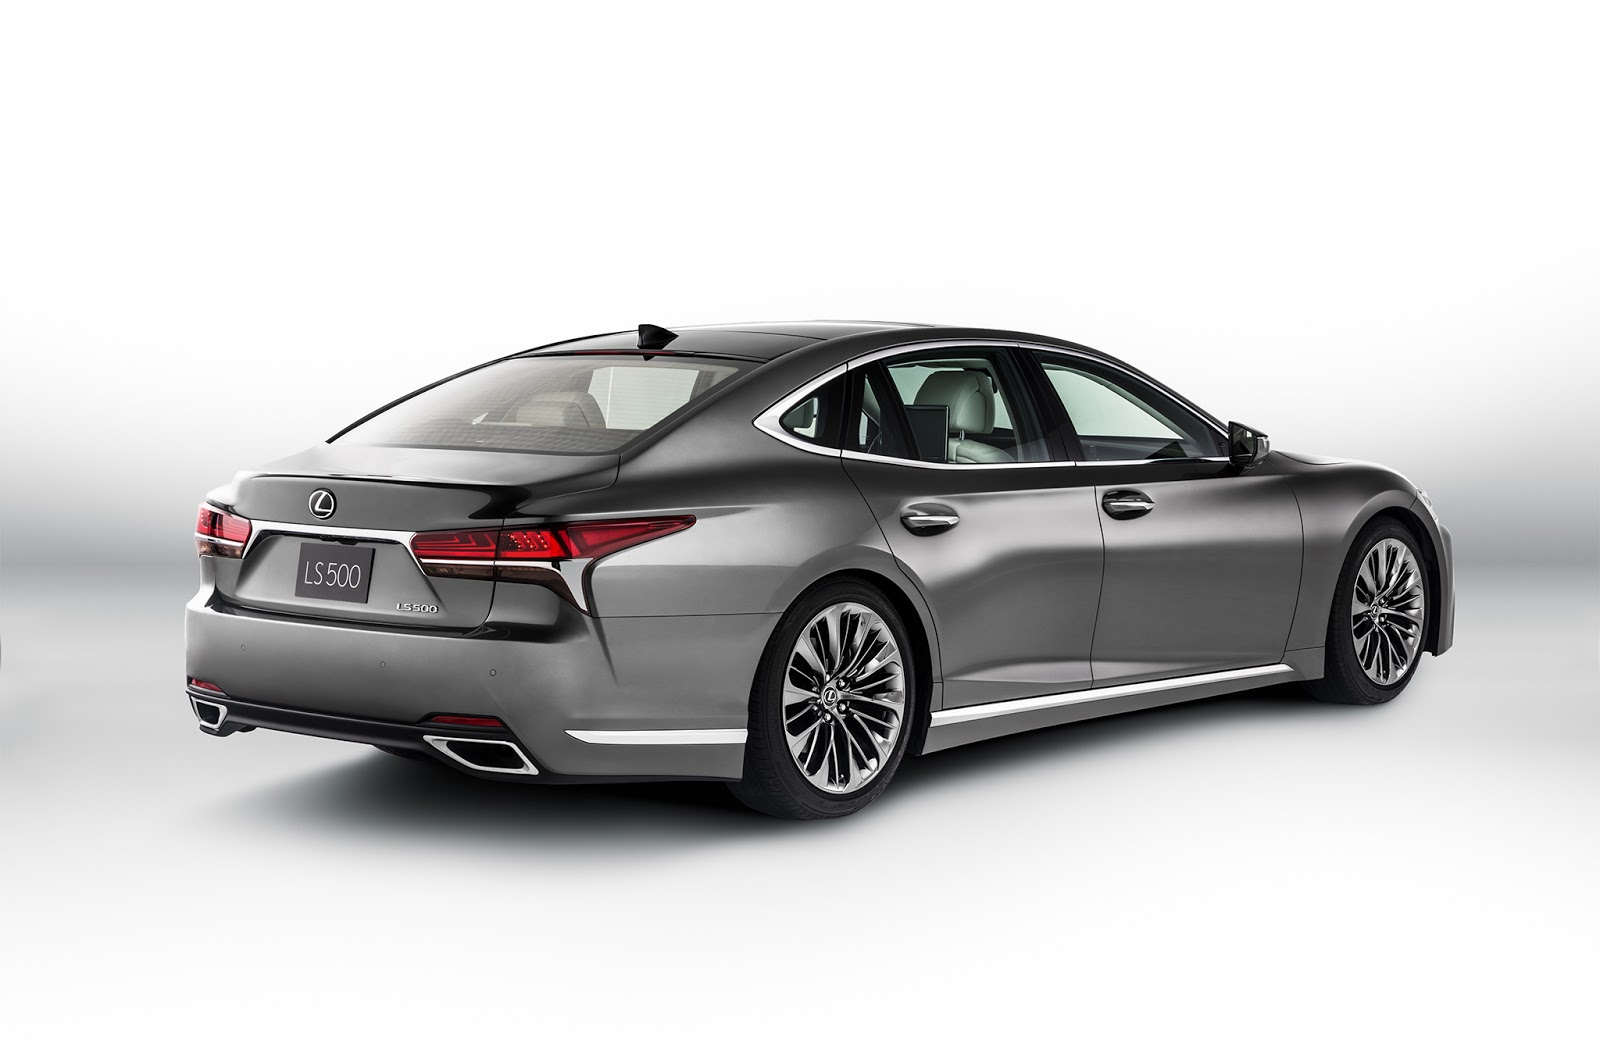 cars review concept specs price lexus ls 2017 review specs price. Black Bedroom Furniture Sets. Home Design Ideas